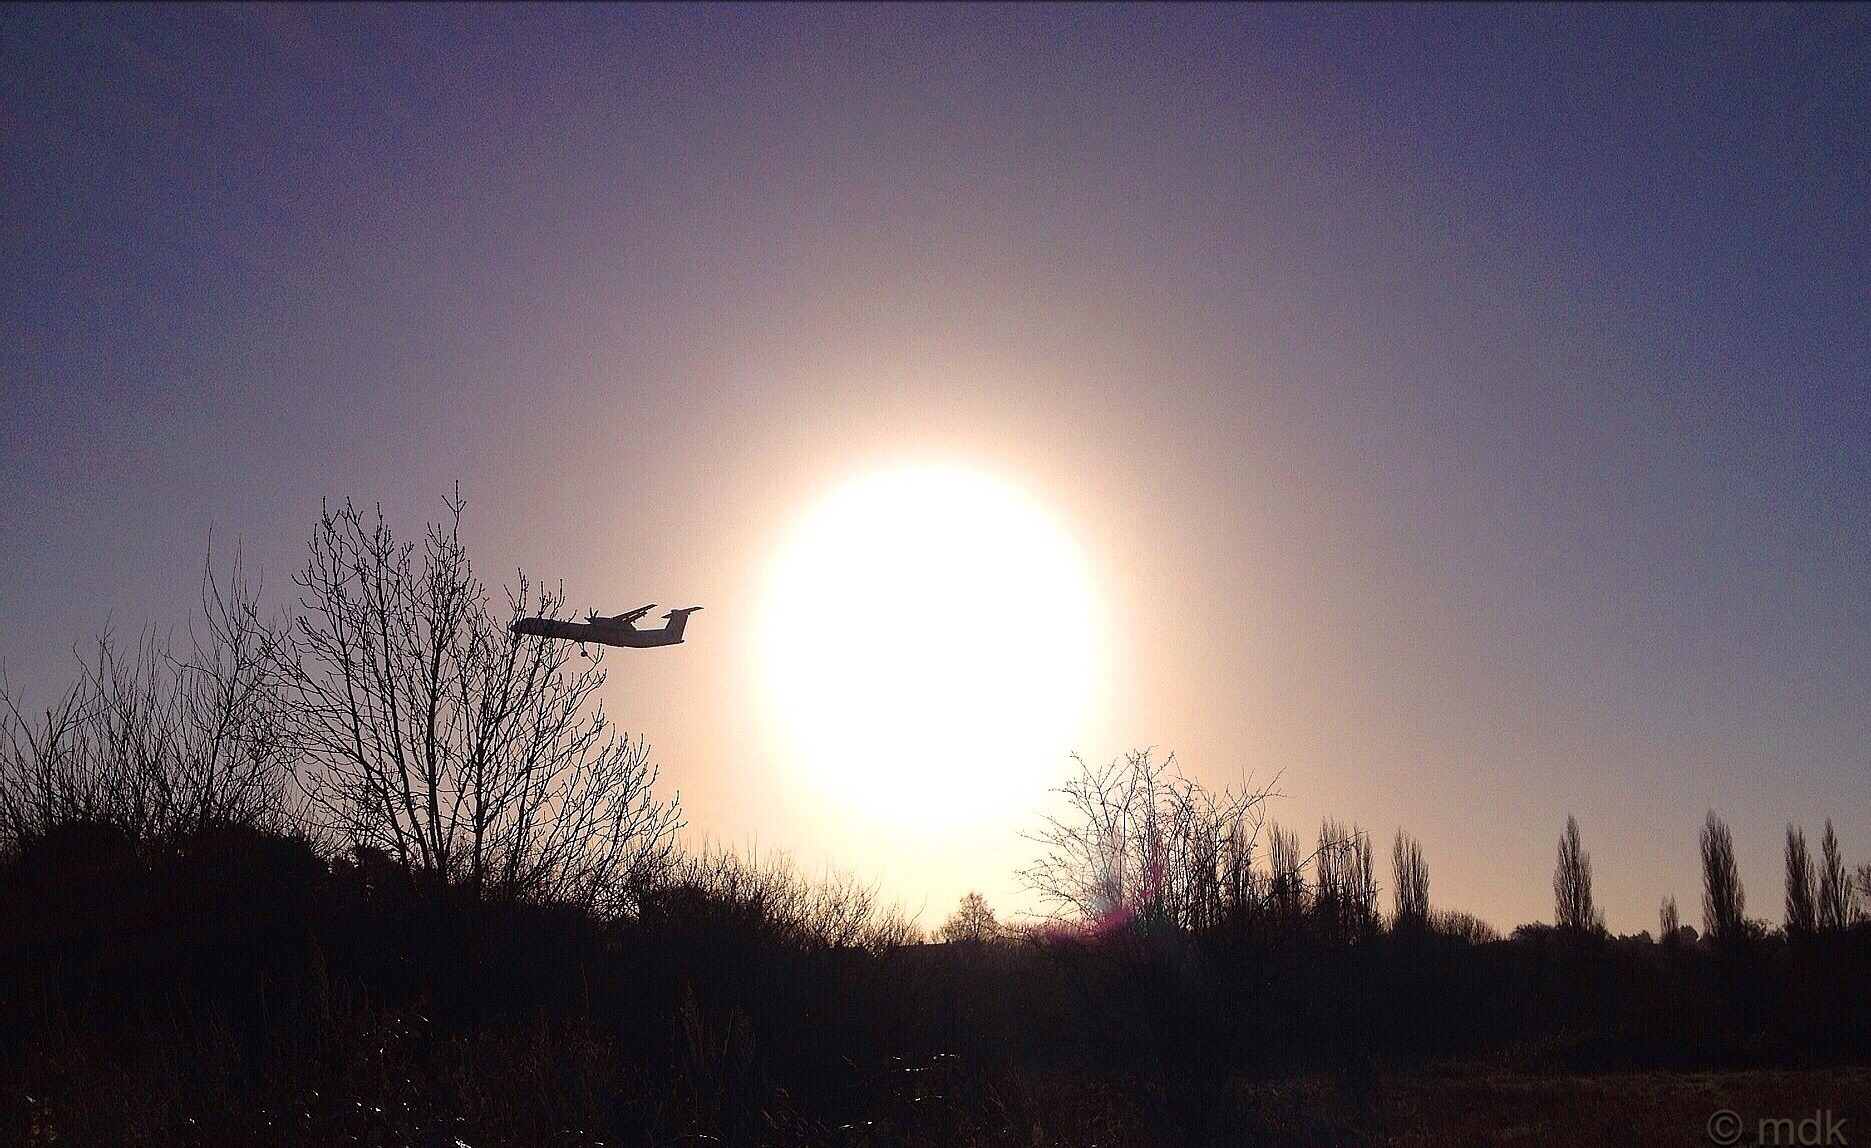 Low flying plane and sun, a distracting combination